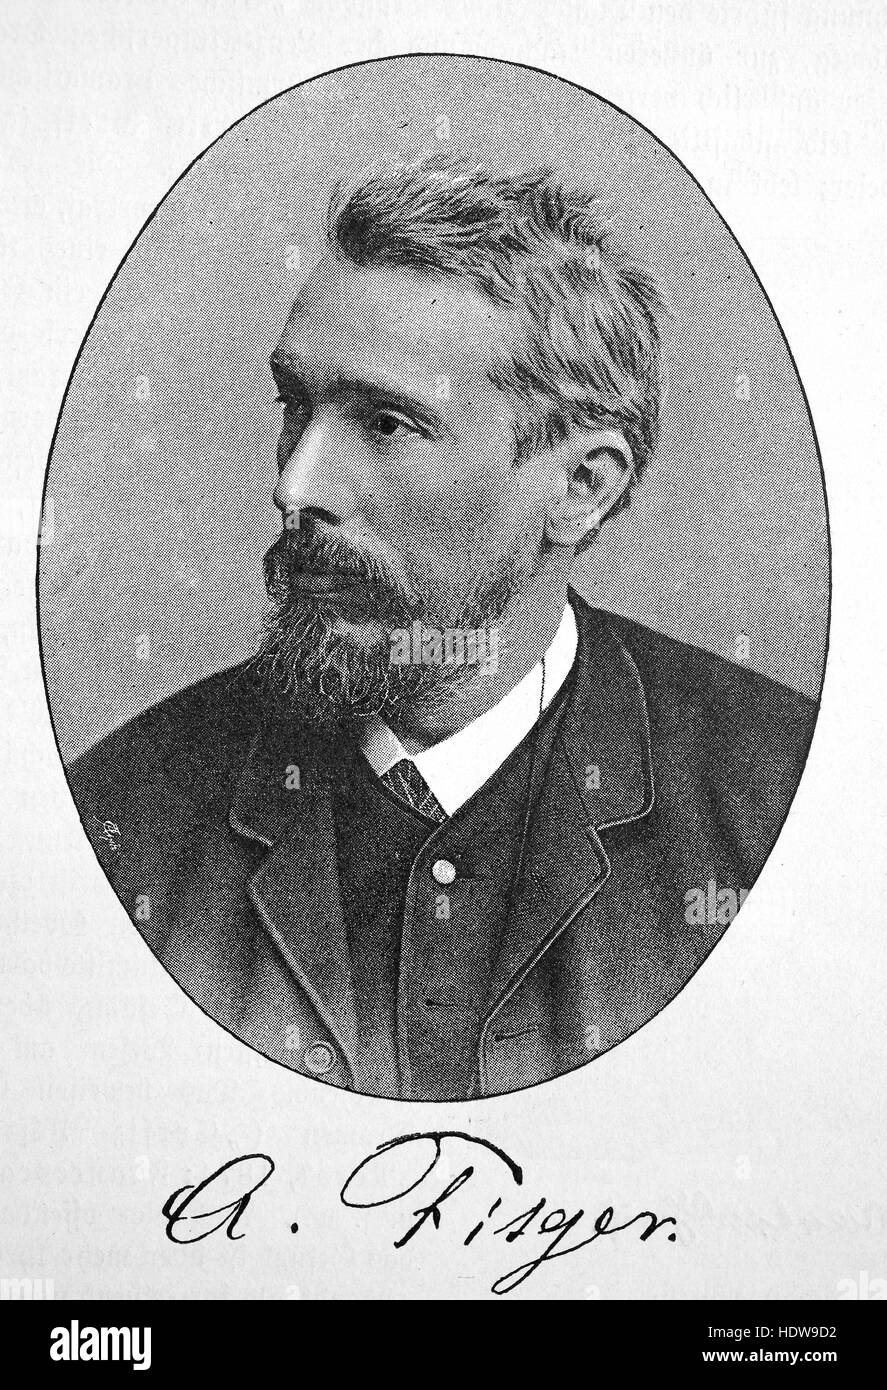 Arthur Heinrich Wilhelm Fitger, 1840 - 1909, German painter, art critic, playwright and poet, woodcut from the year - Stock Image